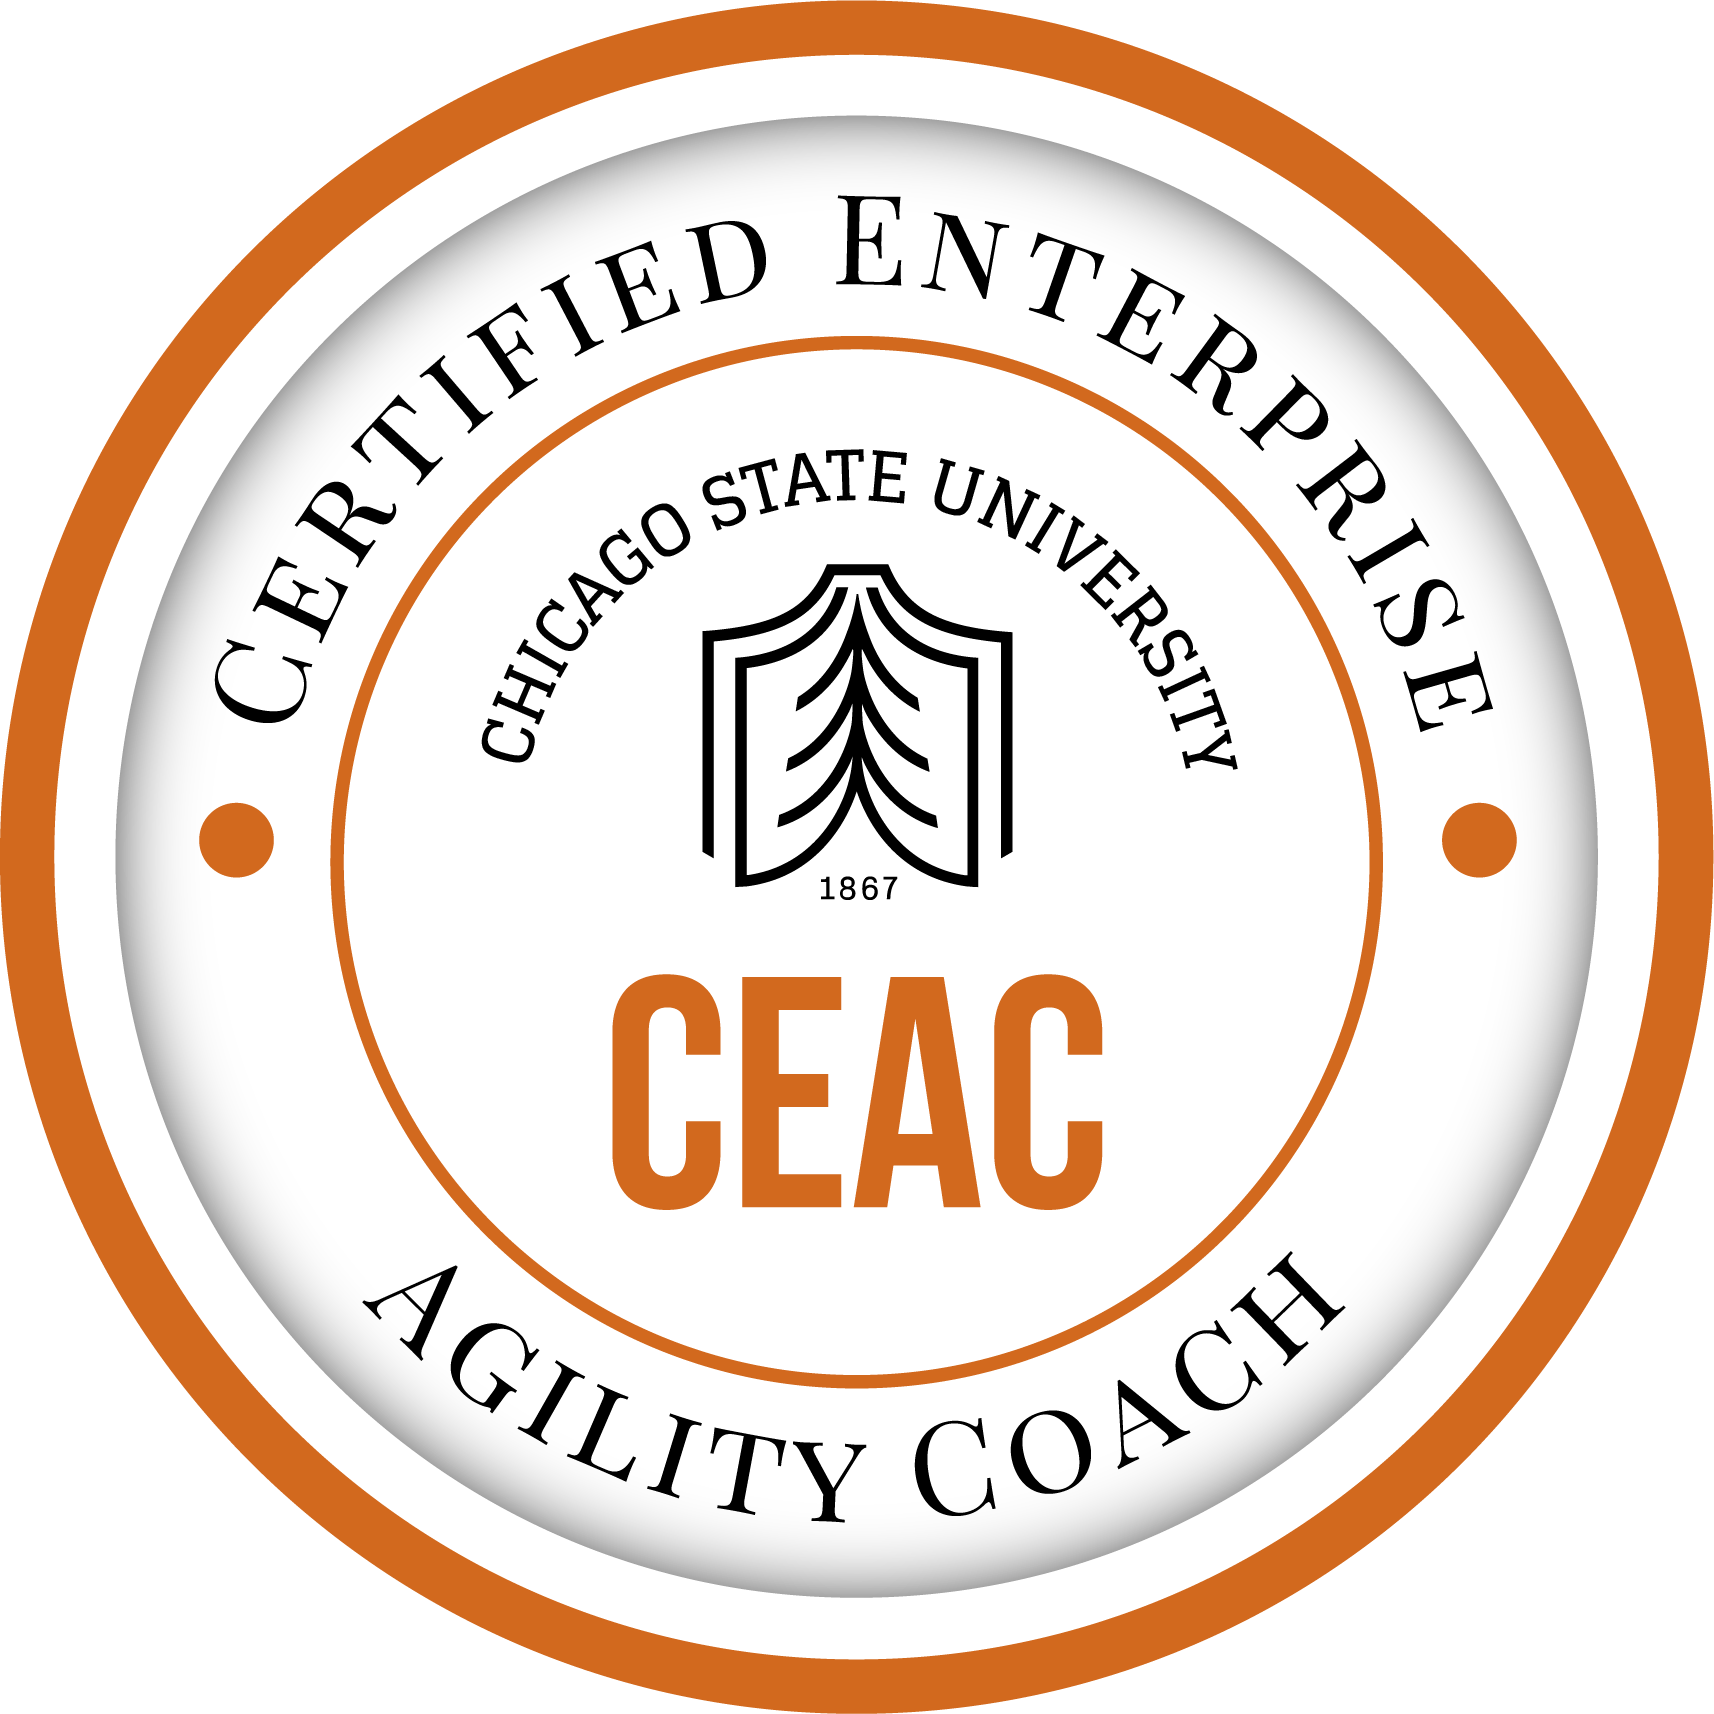 Certified Enterprise Agile Coach (CEAC) from Chicago State University